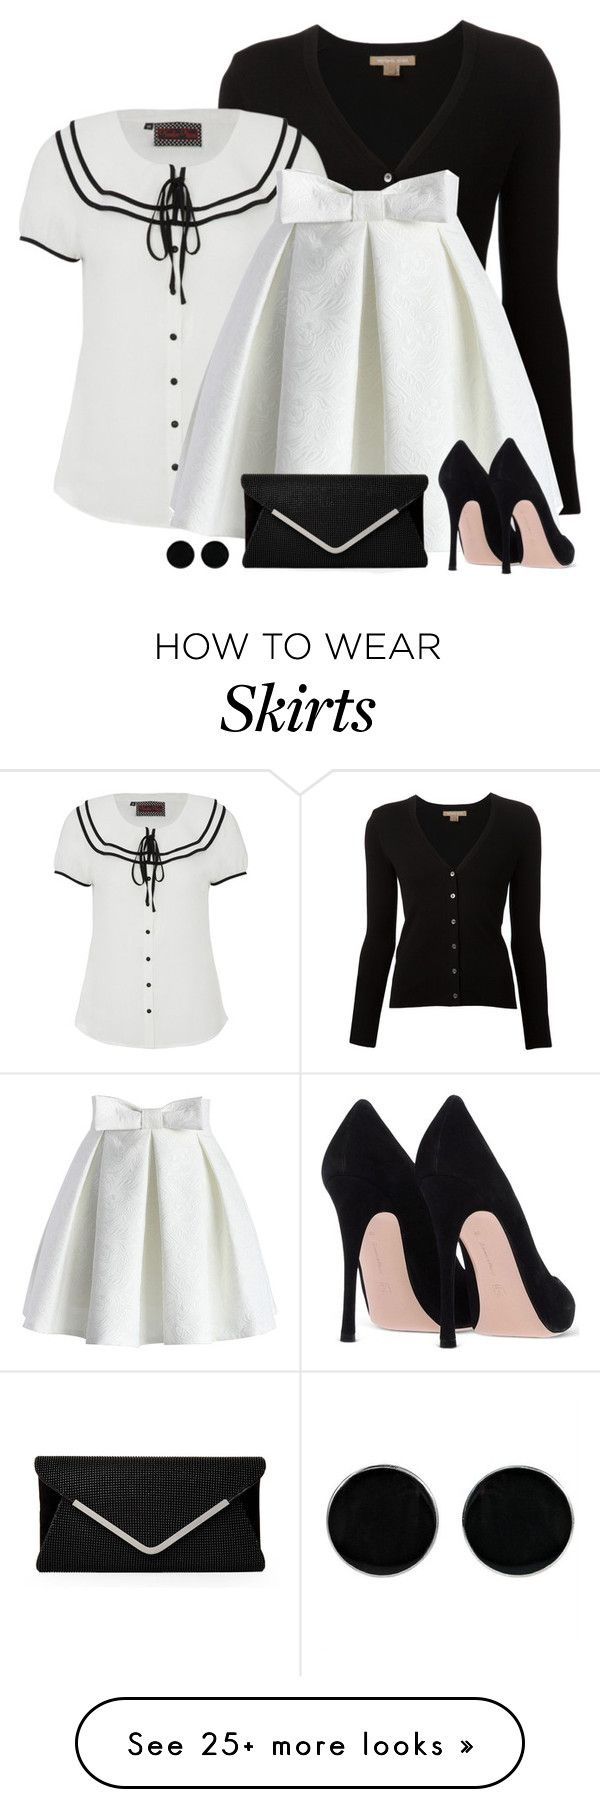 """B&W"" by divacrafts on Polyvore featuring Michael Kors, Voodoo Vixen, Chicwish, AeraVida and Original"